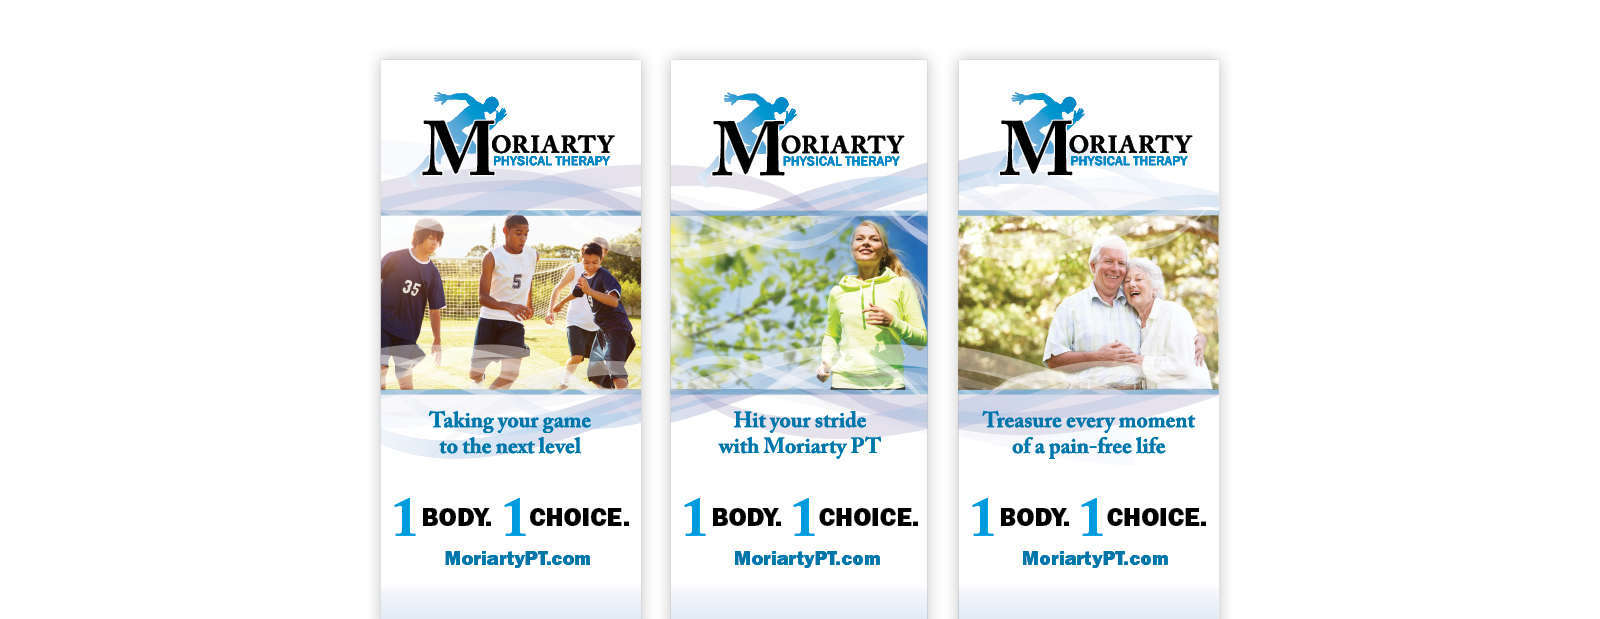 Moriarty Physical Therapy - Katy Dwyer Design